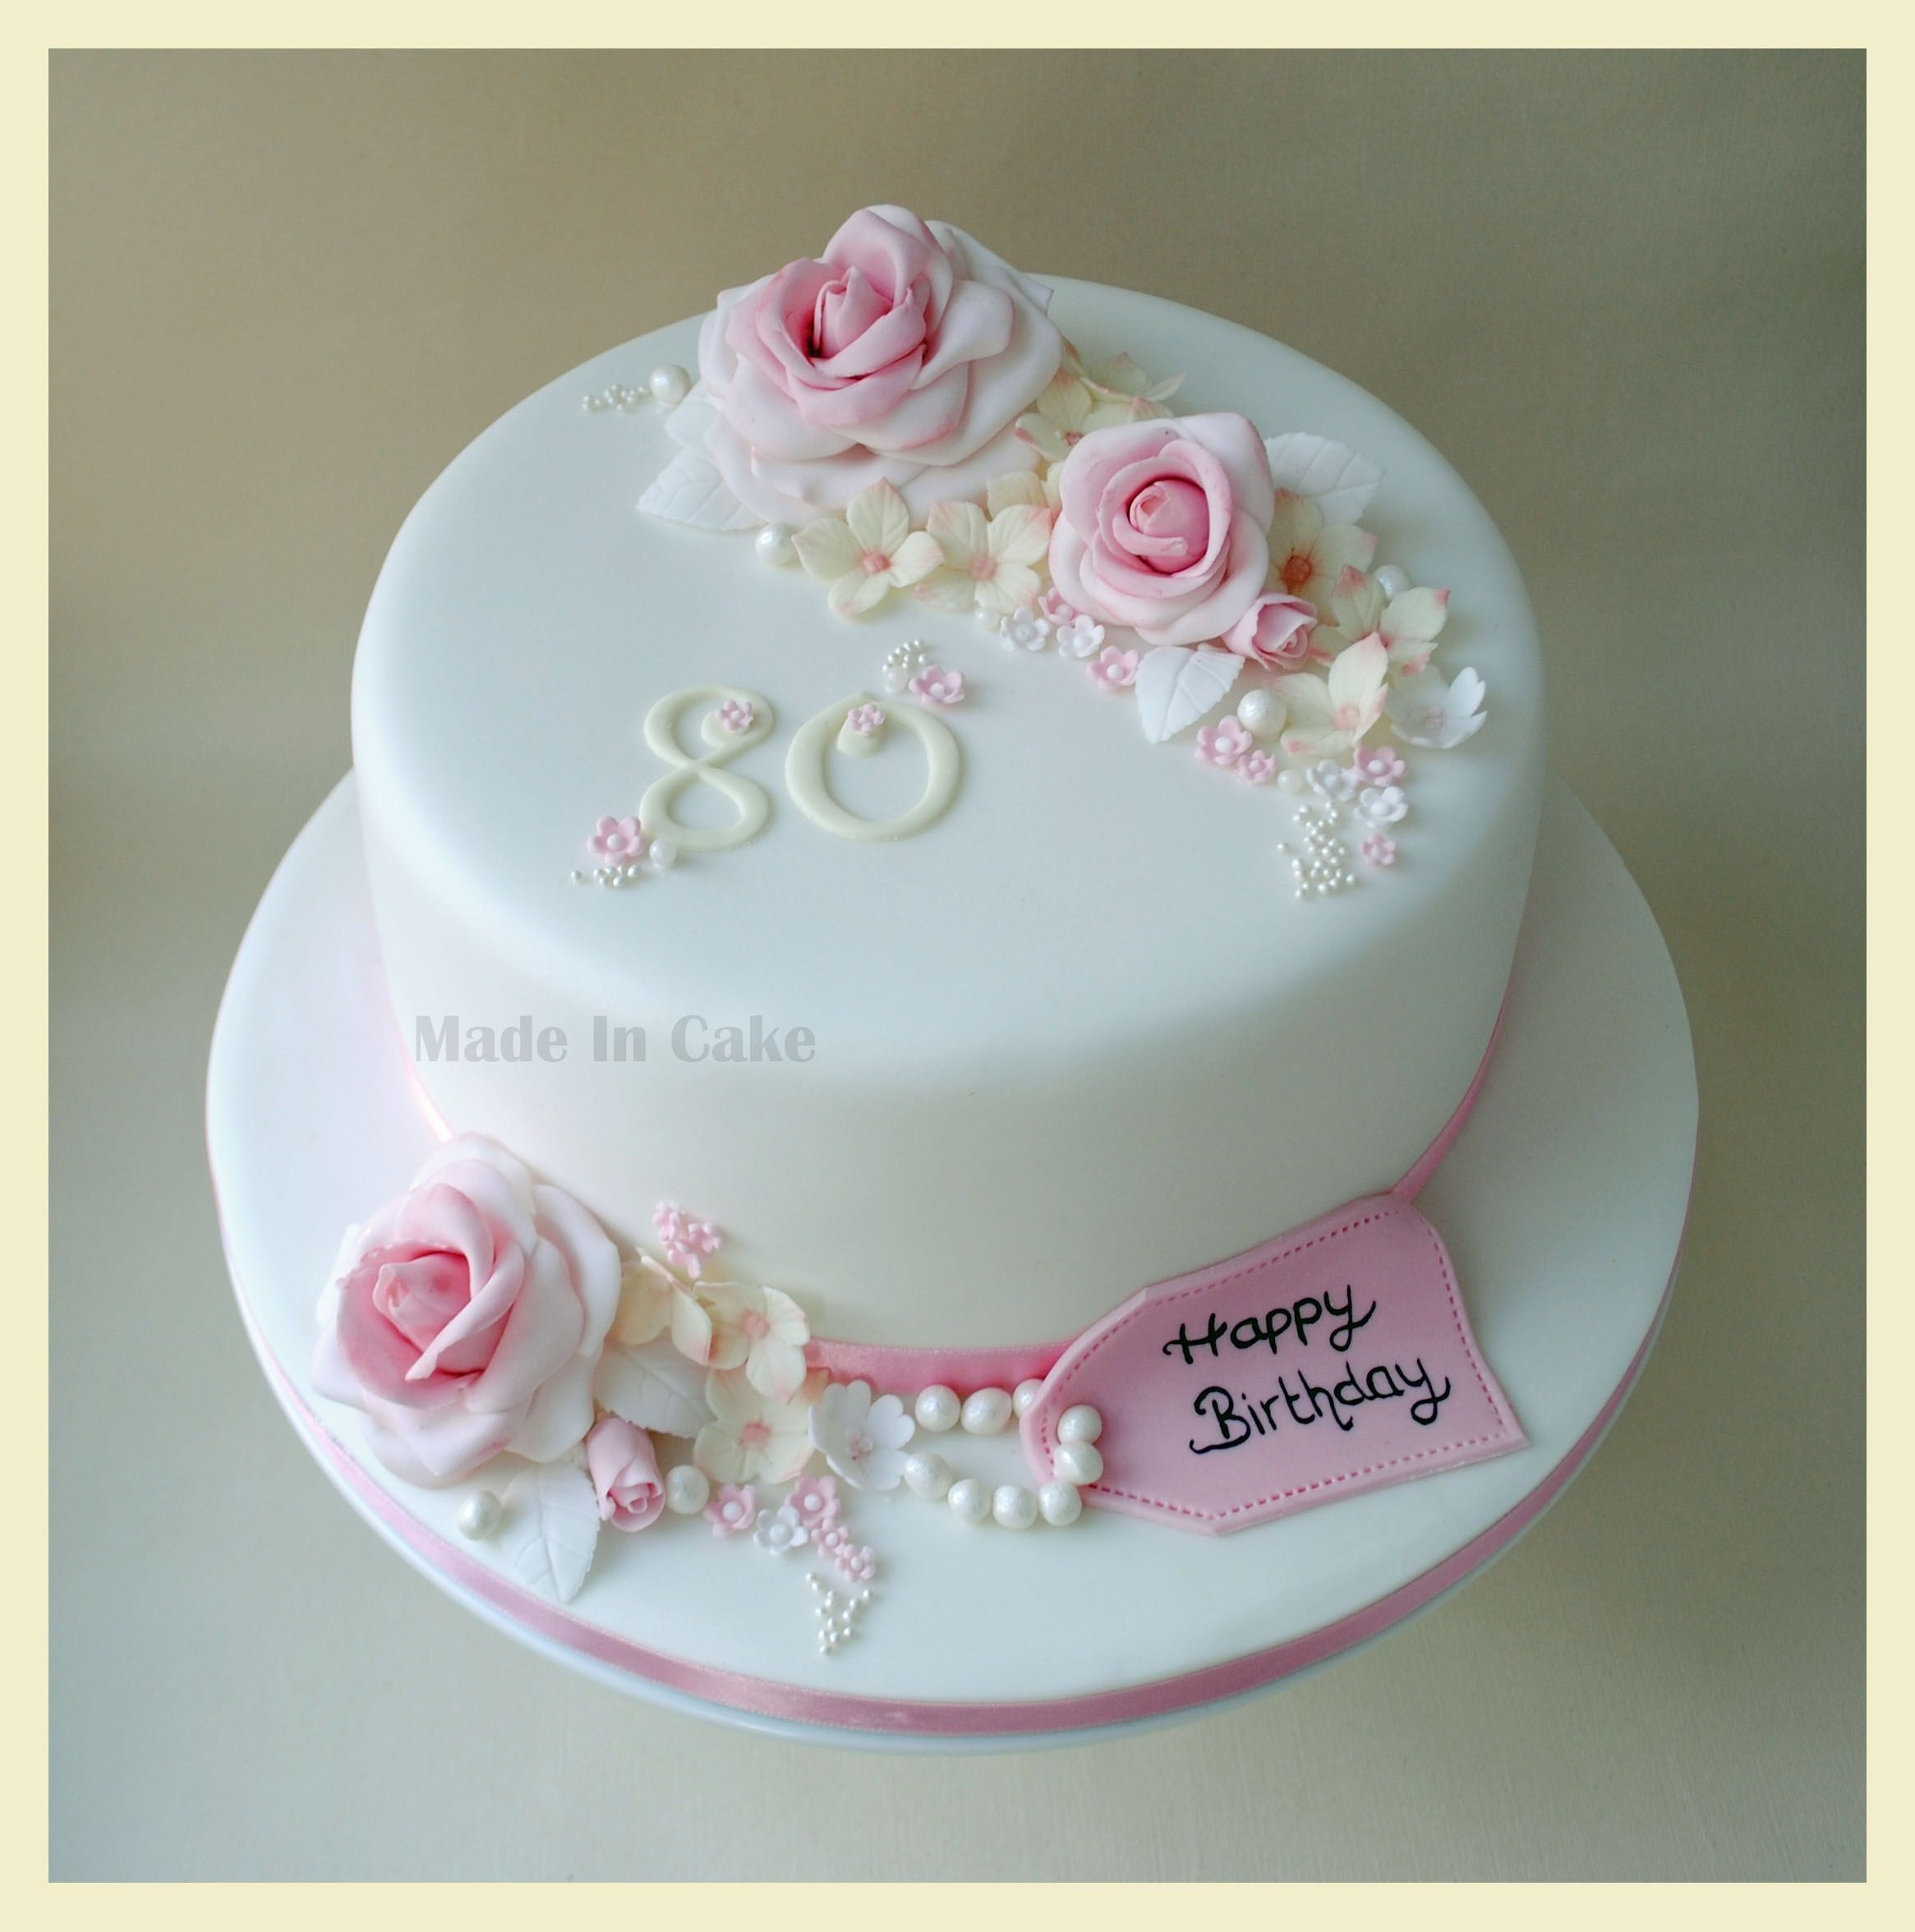 Magnificent 32 Elegant Picture Of 80Th Birthday Cake Ideas 80 Birthday Cake Funny Birthday Cards Online Barepcheapnameinfo